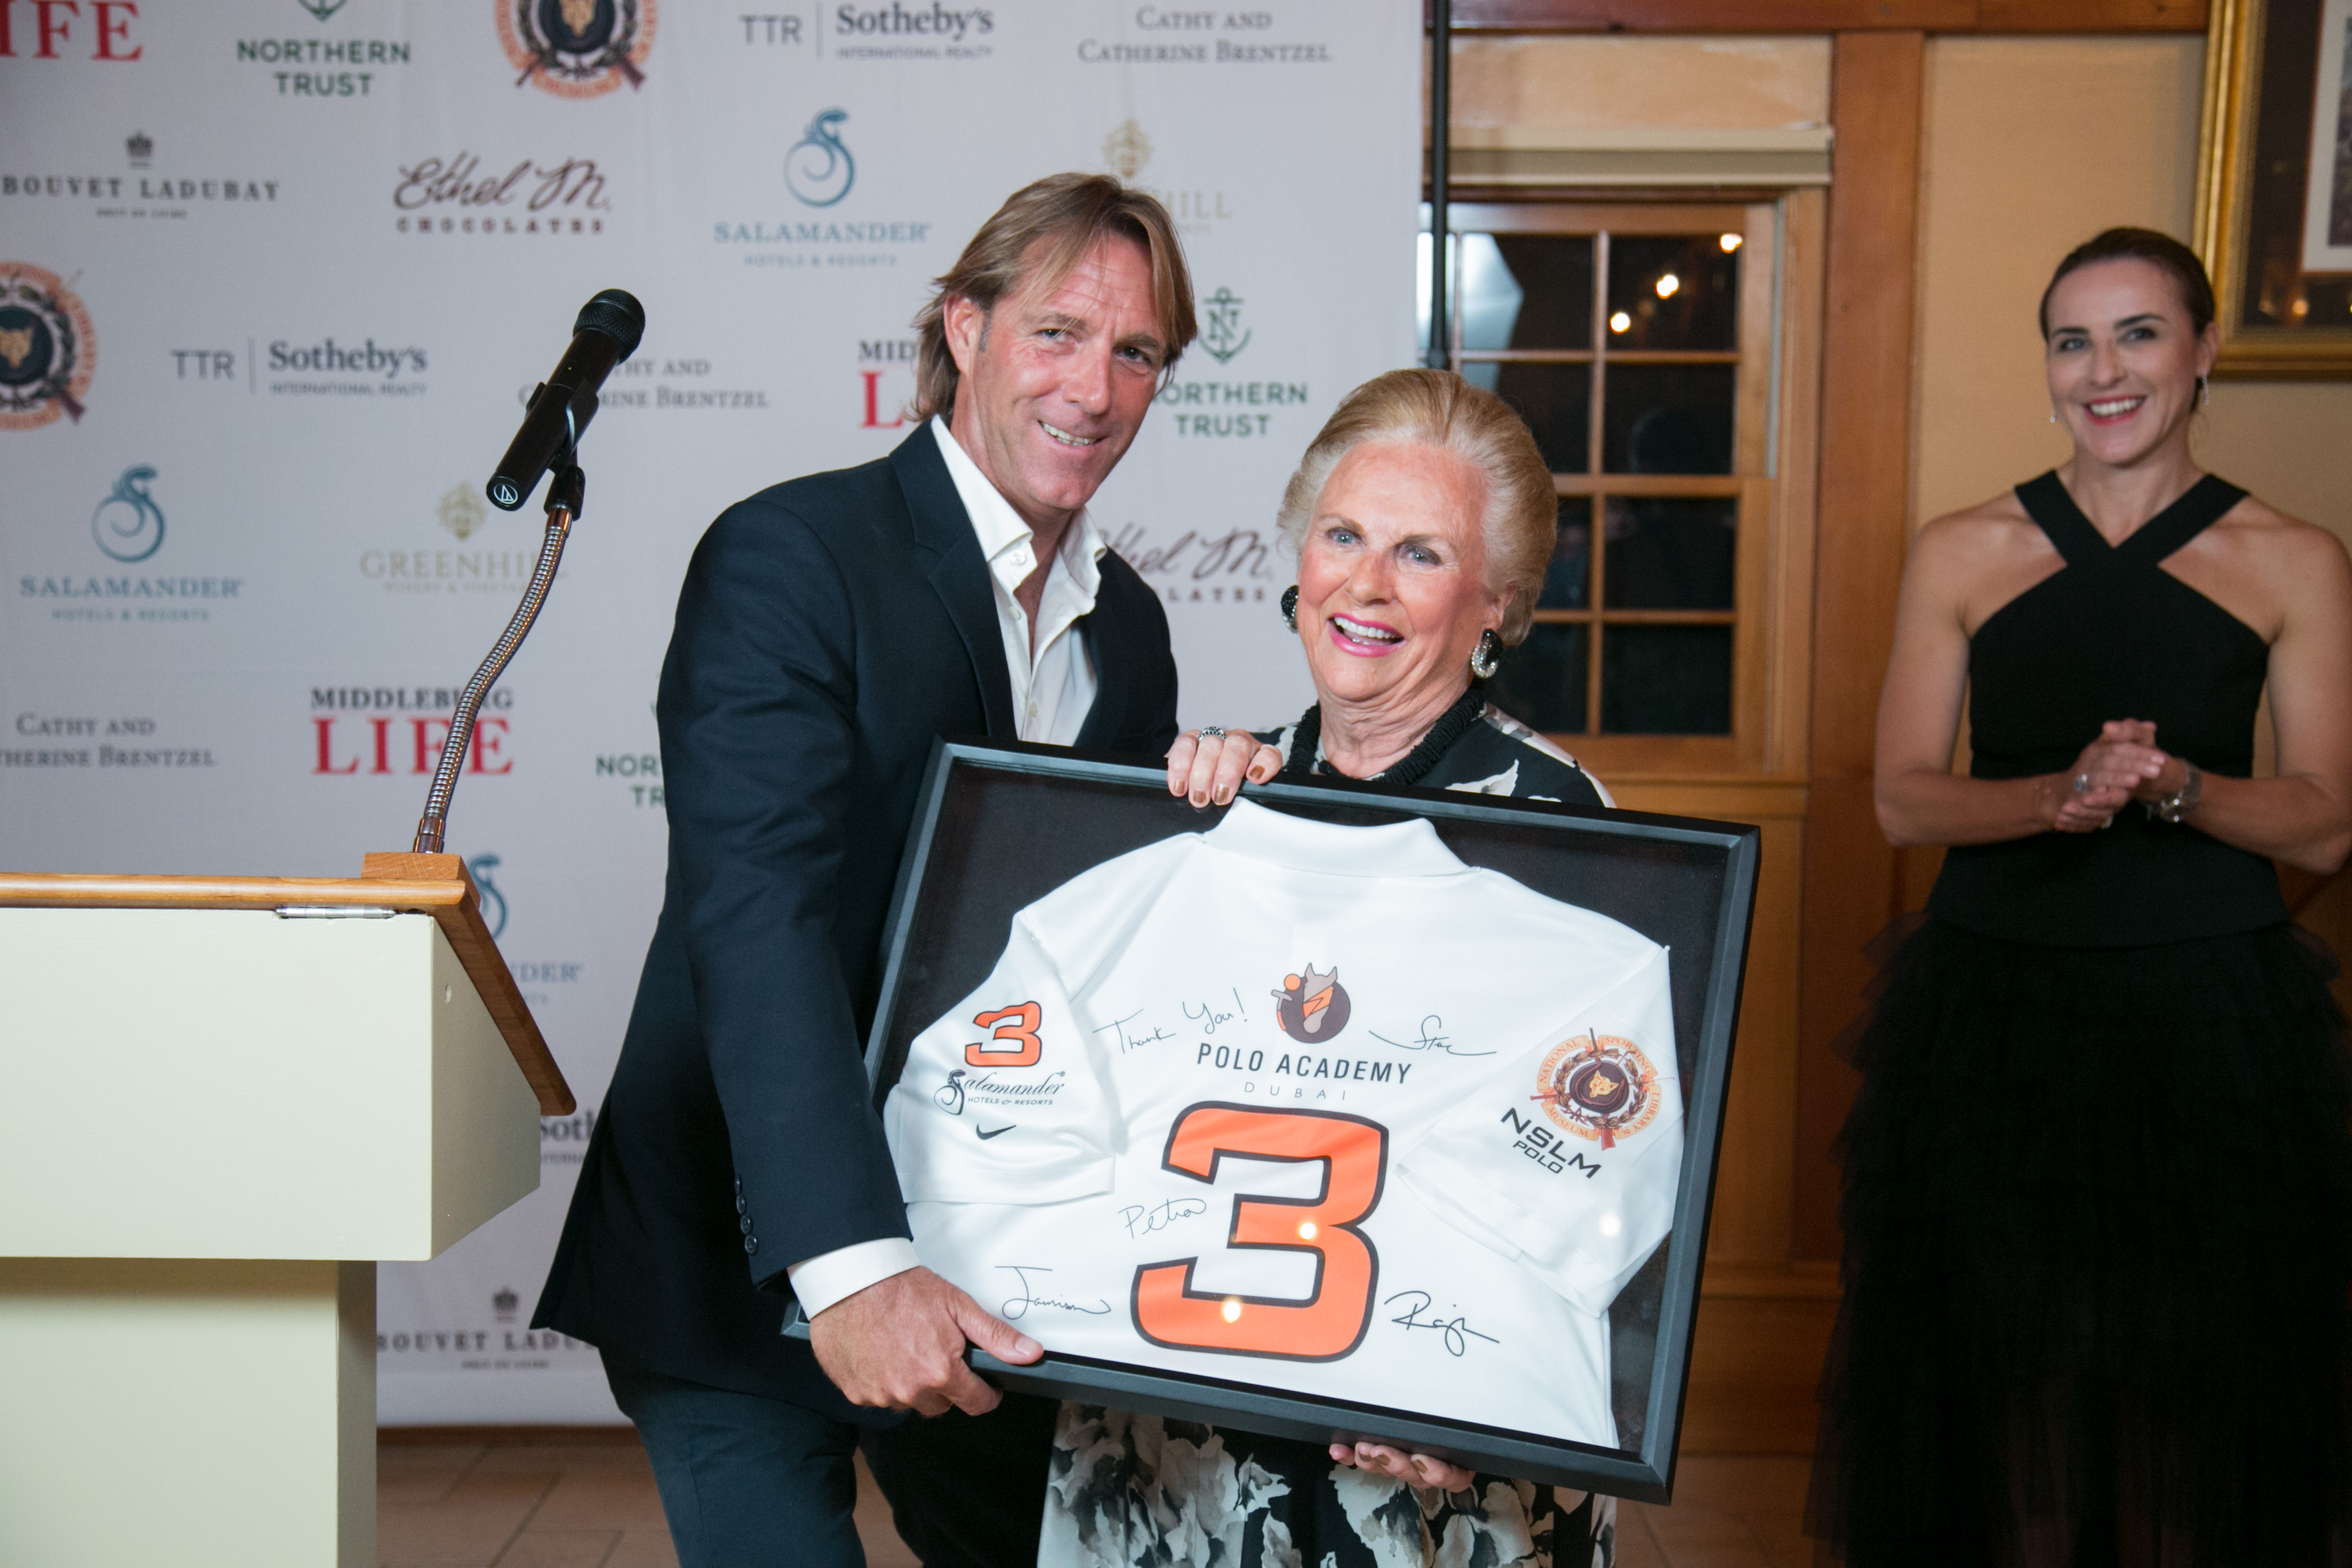 Steve Thompson, of the Dubai polo team, gives Jacqueline Mars a signed polo jersey, Photo courtesy of Julie Napear Photography